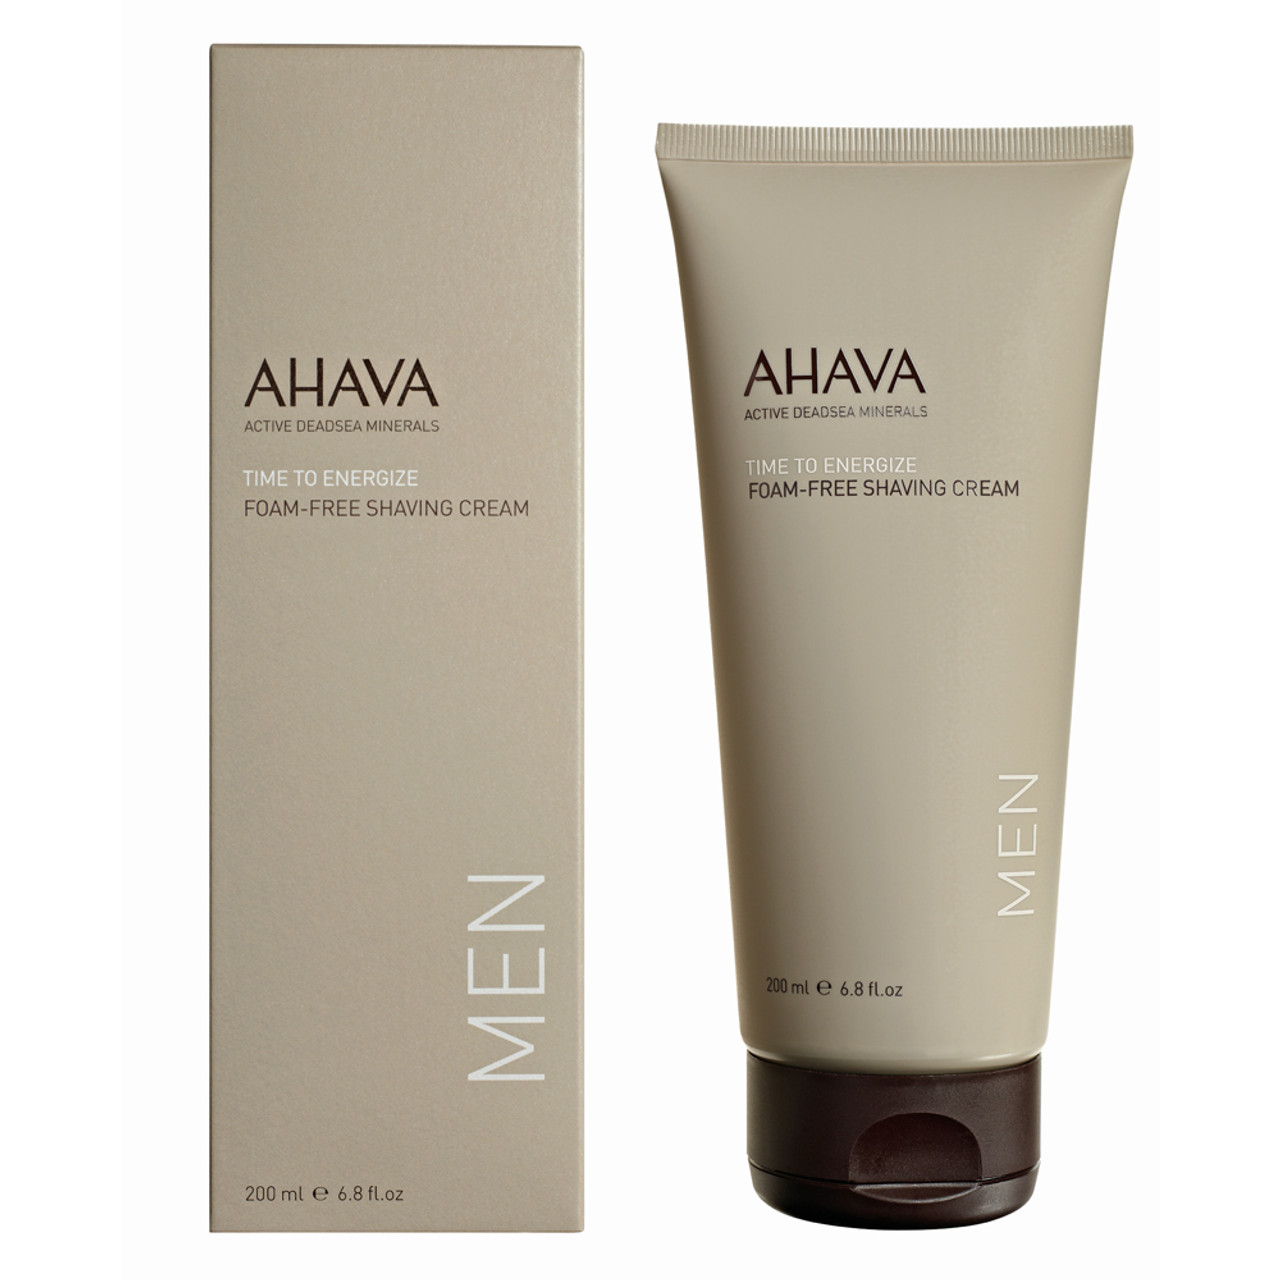 AHAVA Foam Free Shaving Cream